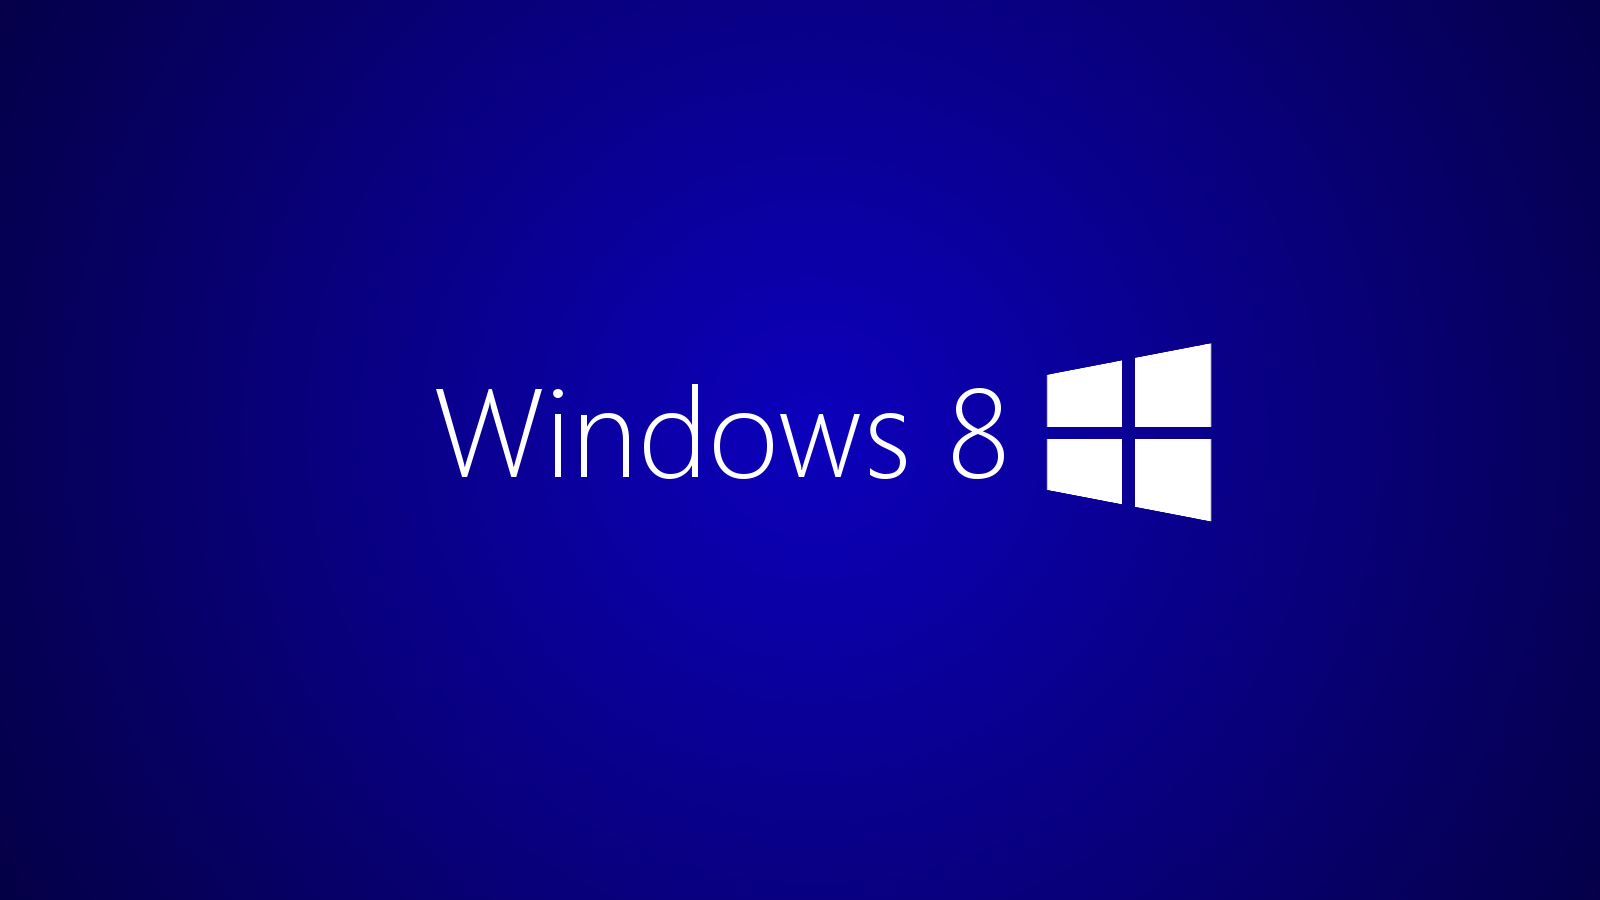 win8bluewall